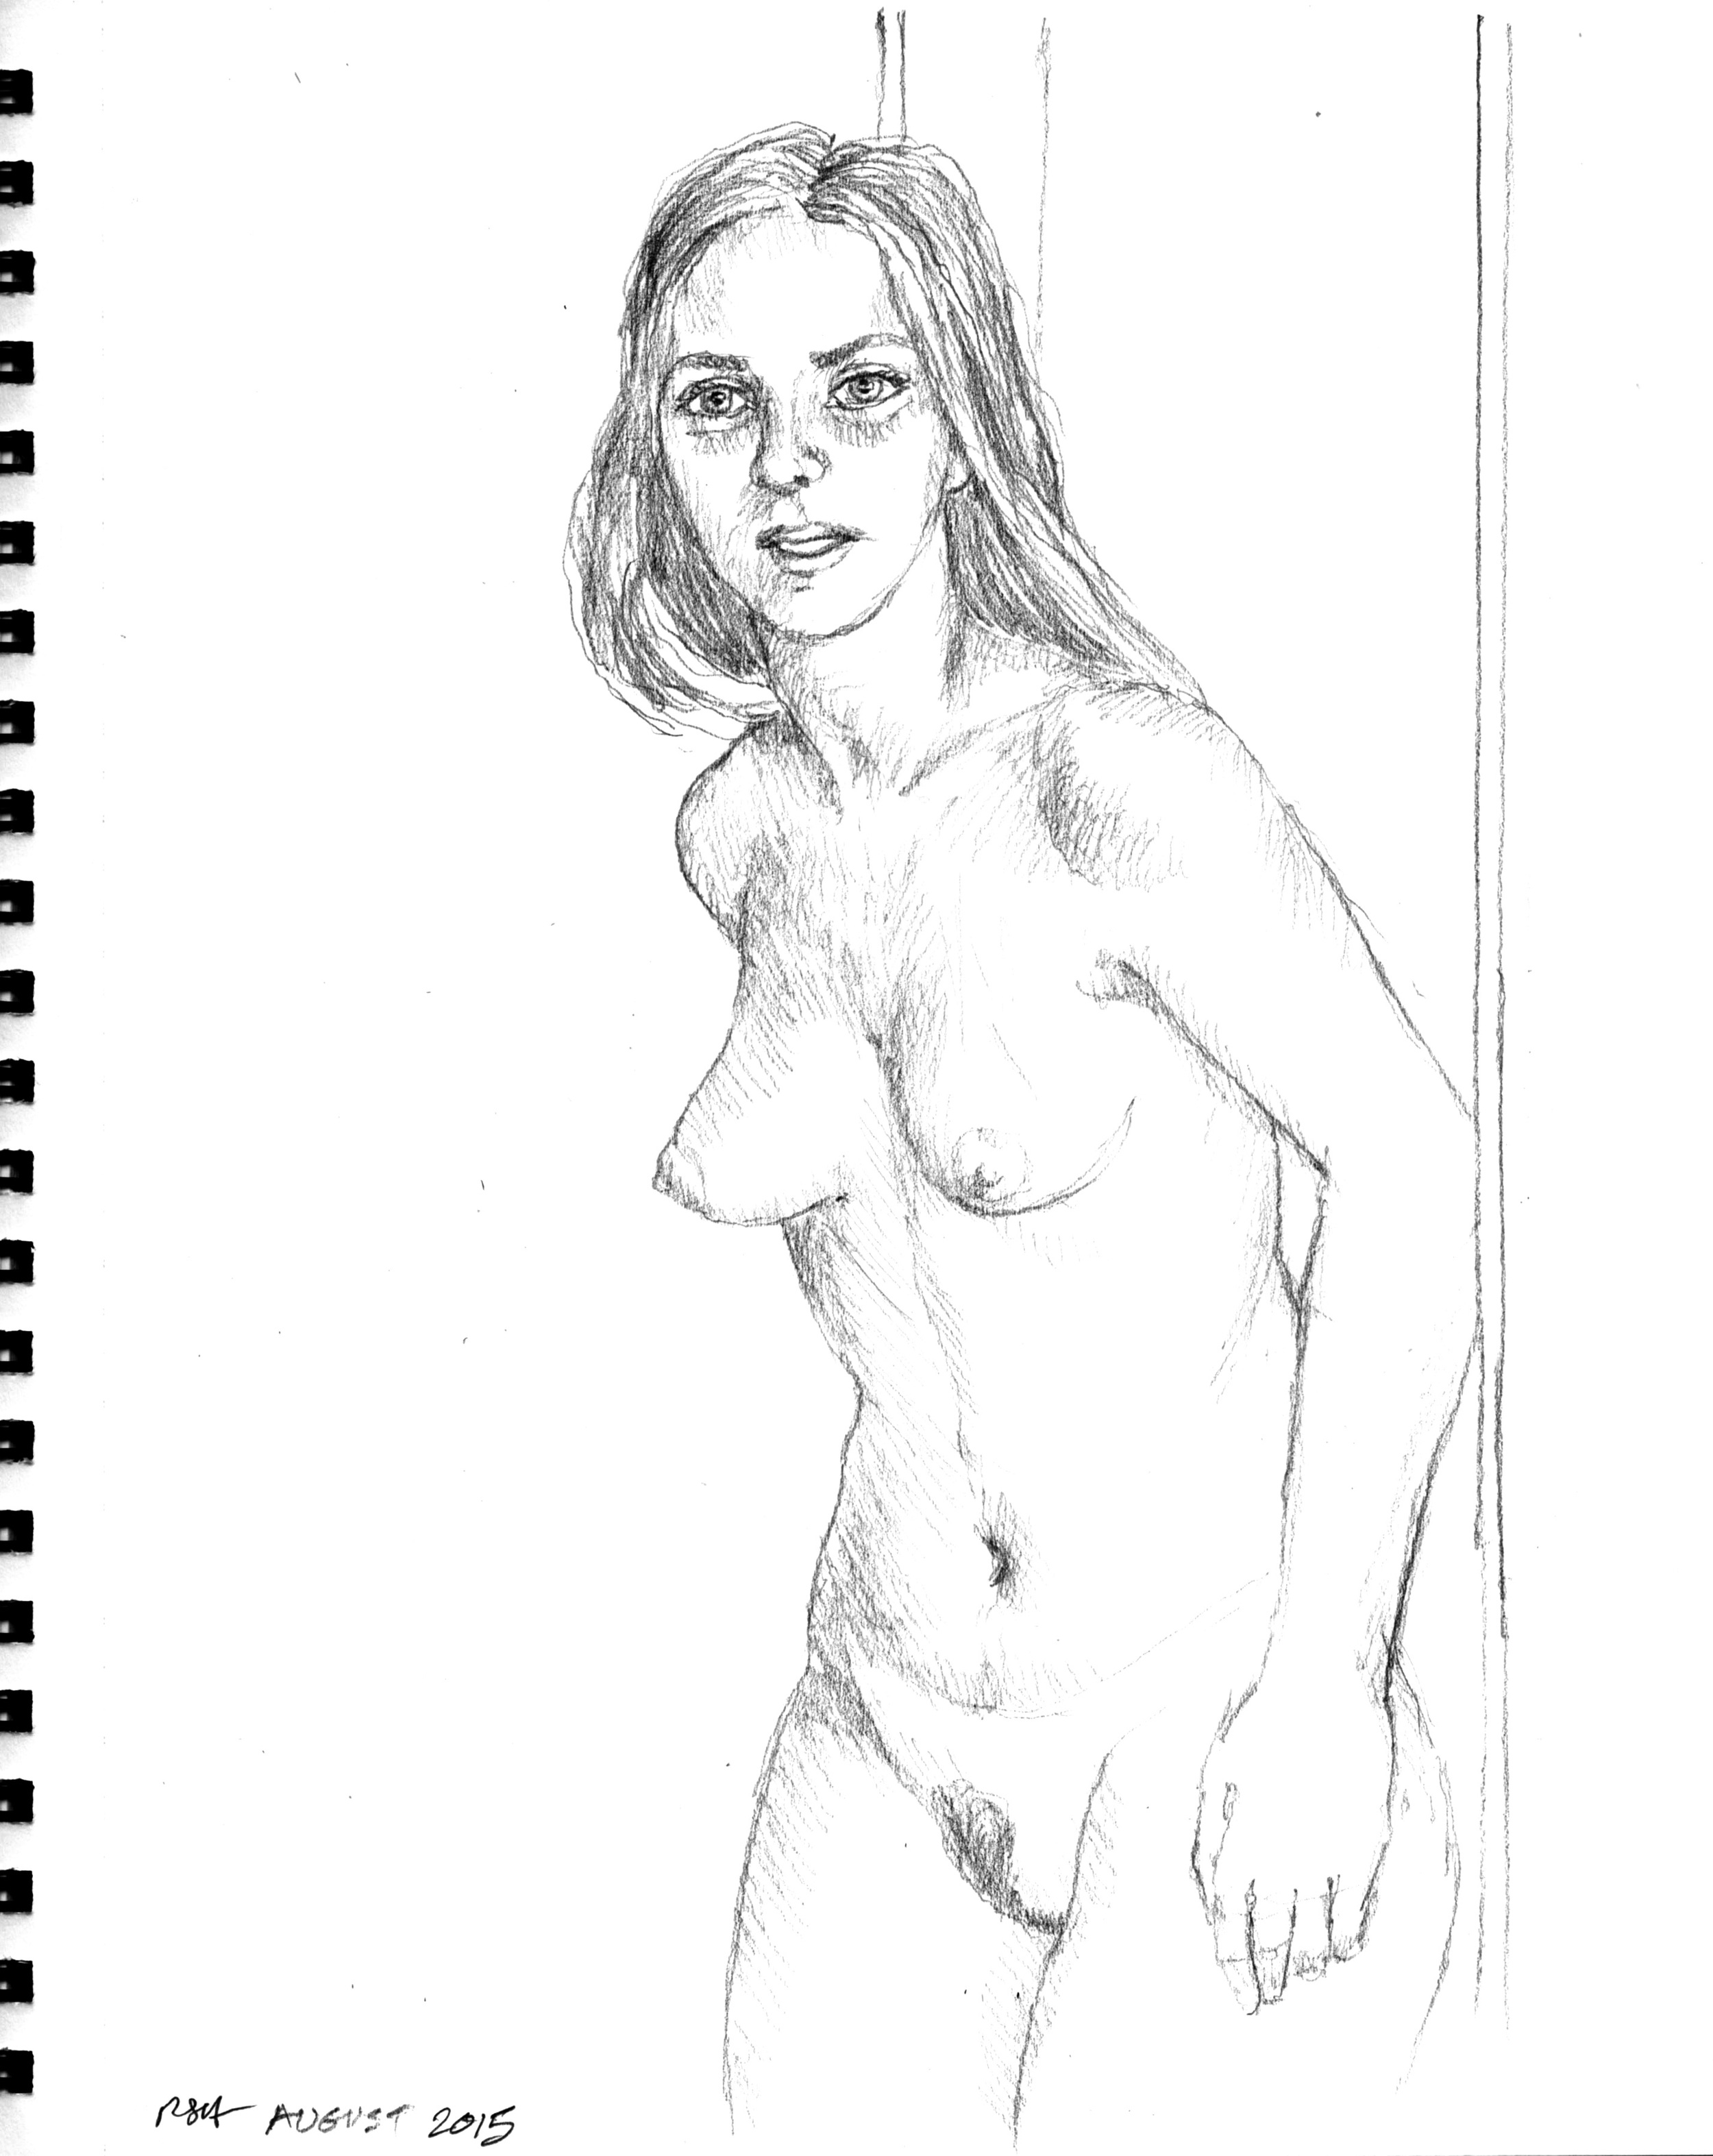 August Sept 2015 sketches_295.jpg